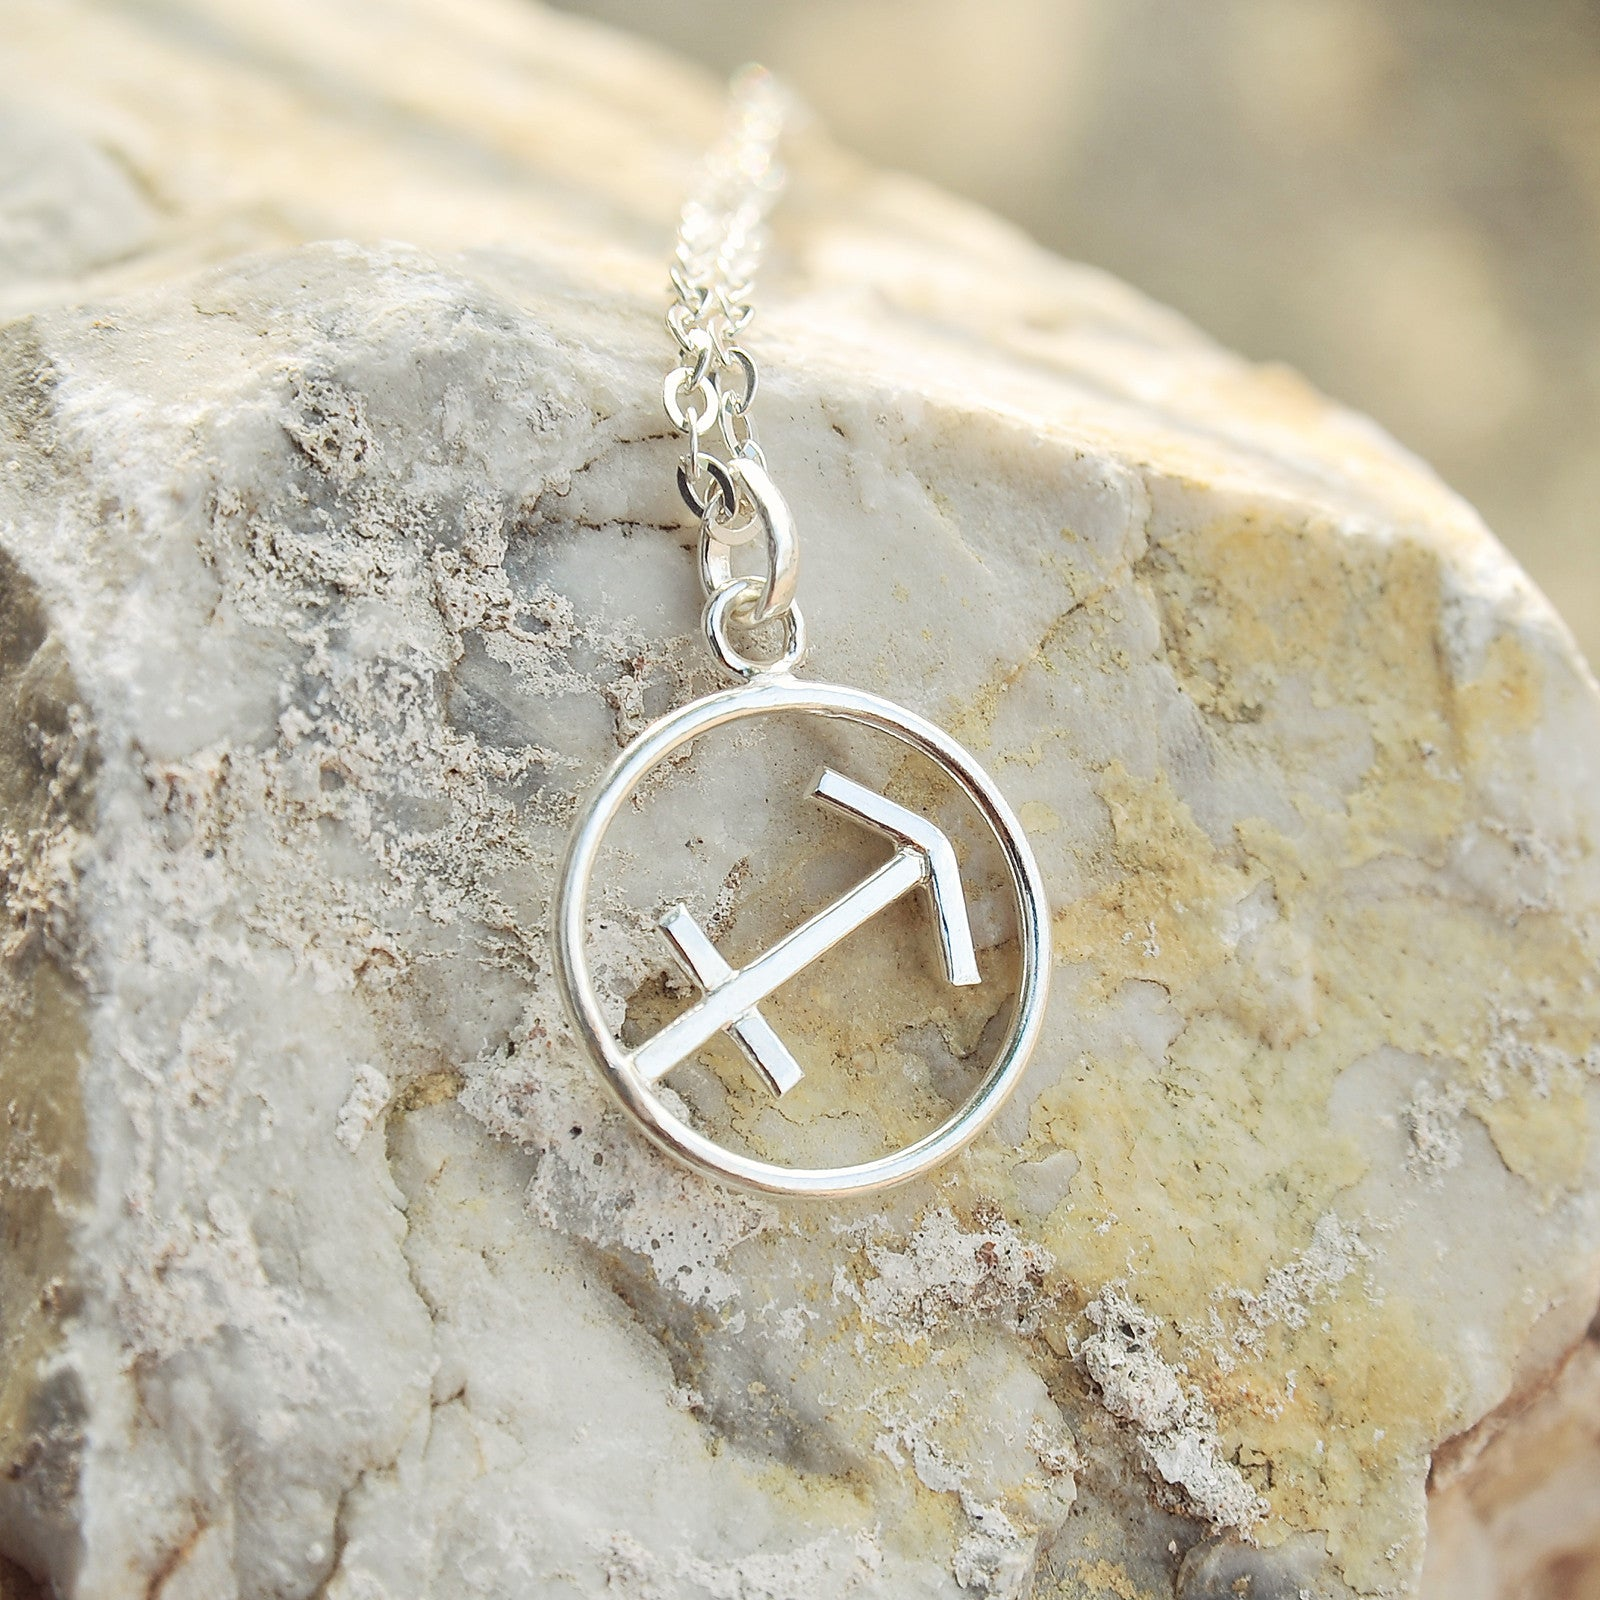 Sagittarius Horoscope Sign Sterling Silver pendant necklace